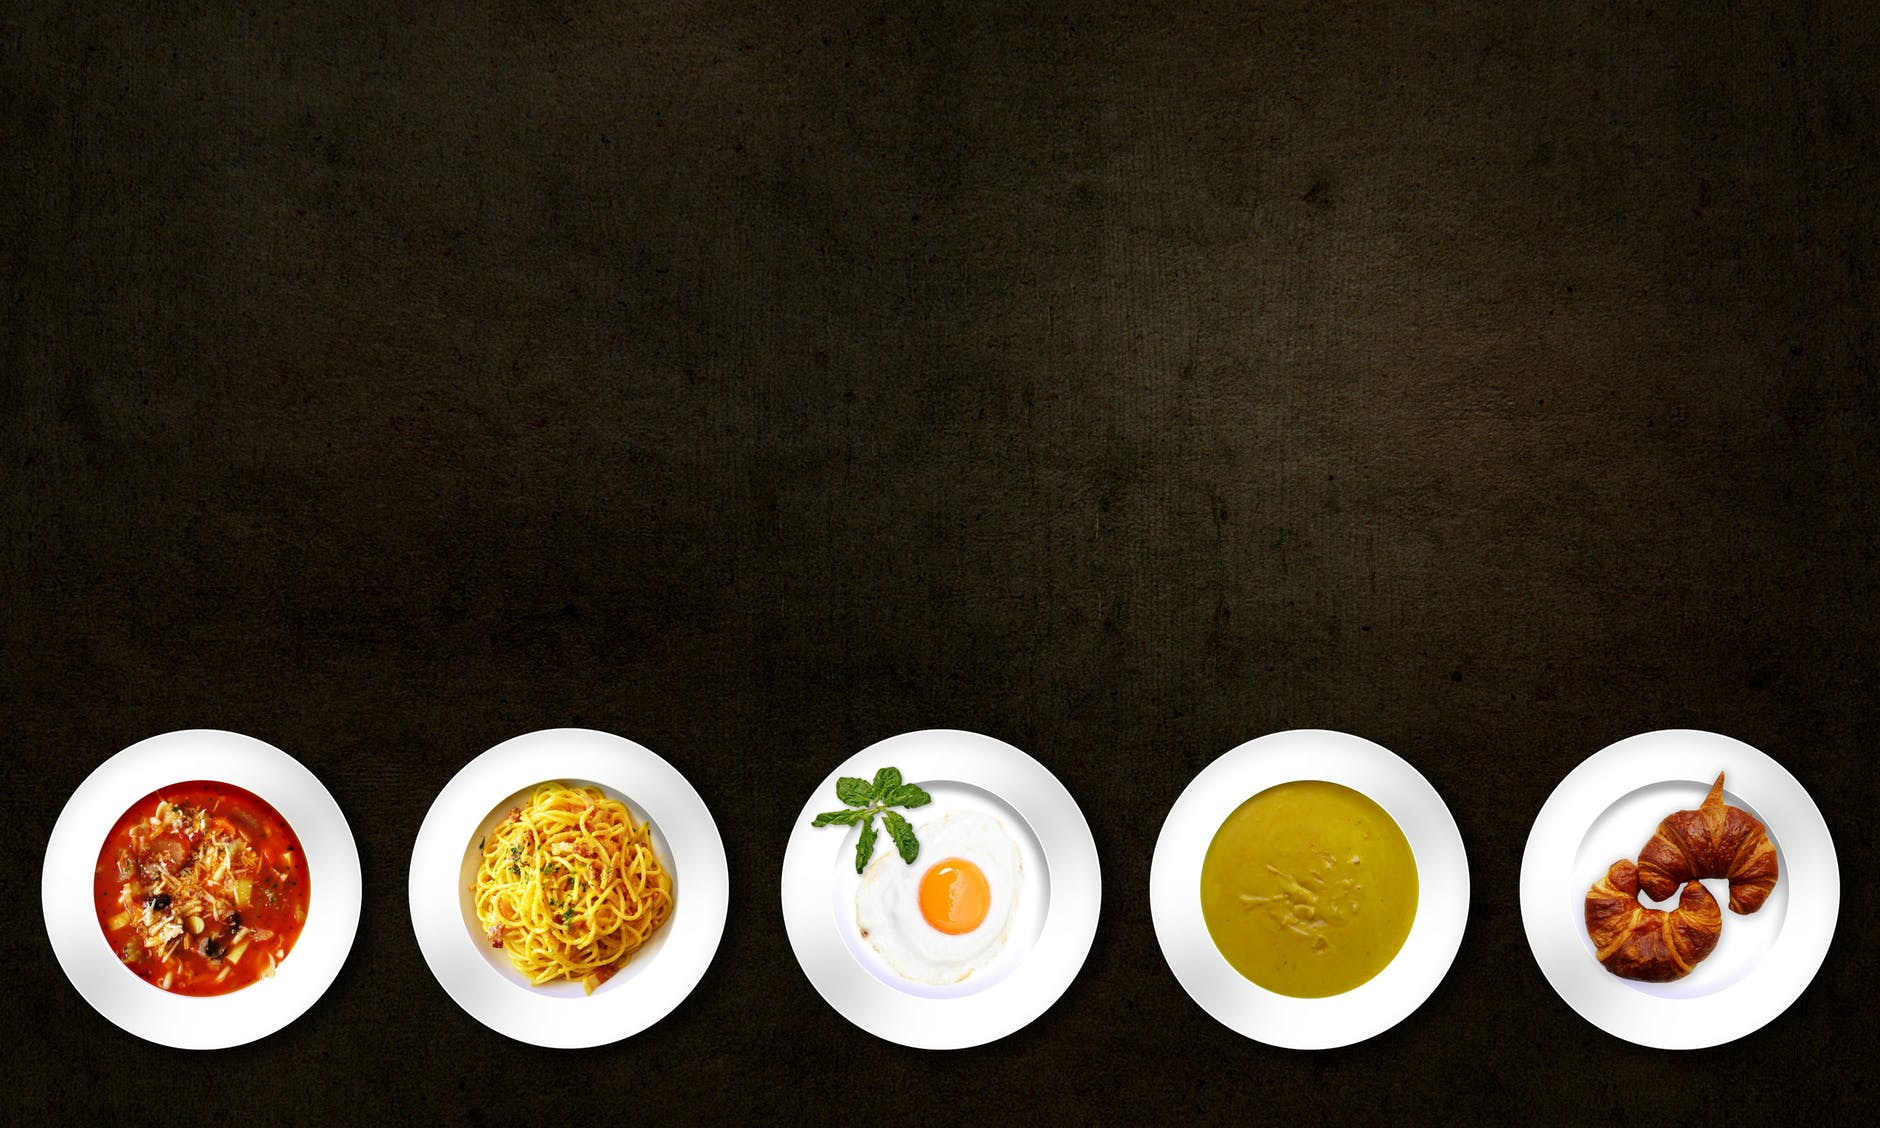 6 Intermittent Fasting Facts You Need To Know